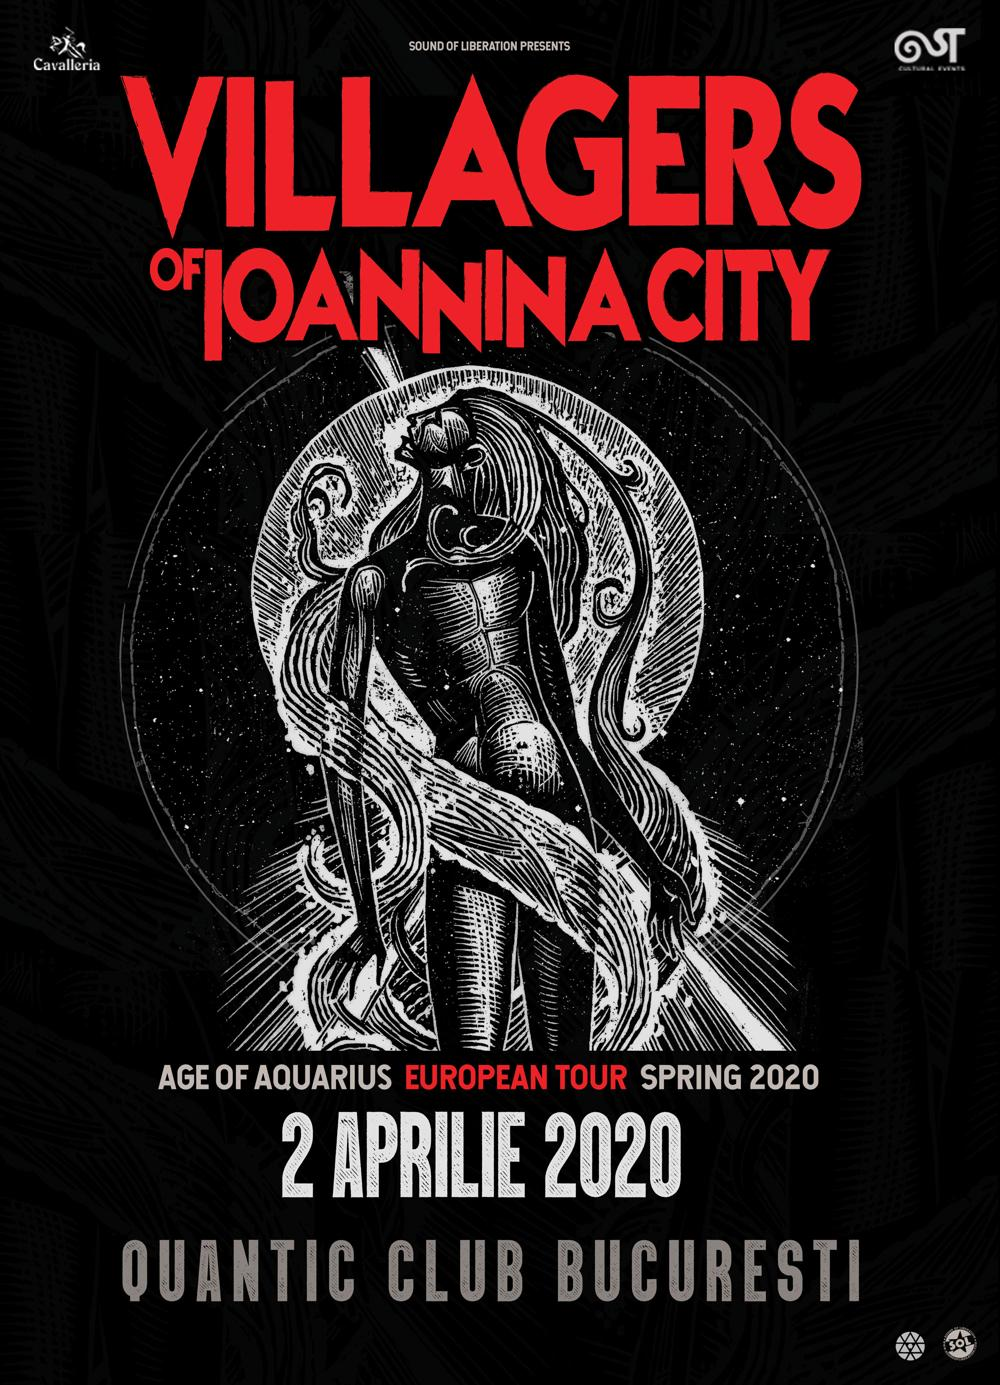 villagers of ioannina city quantic